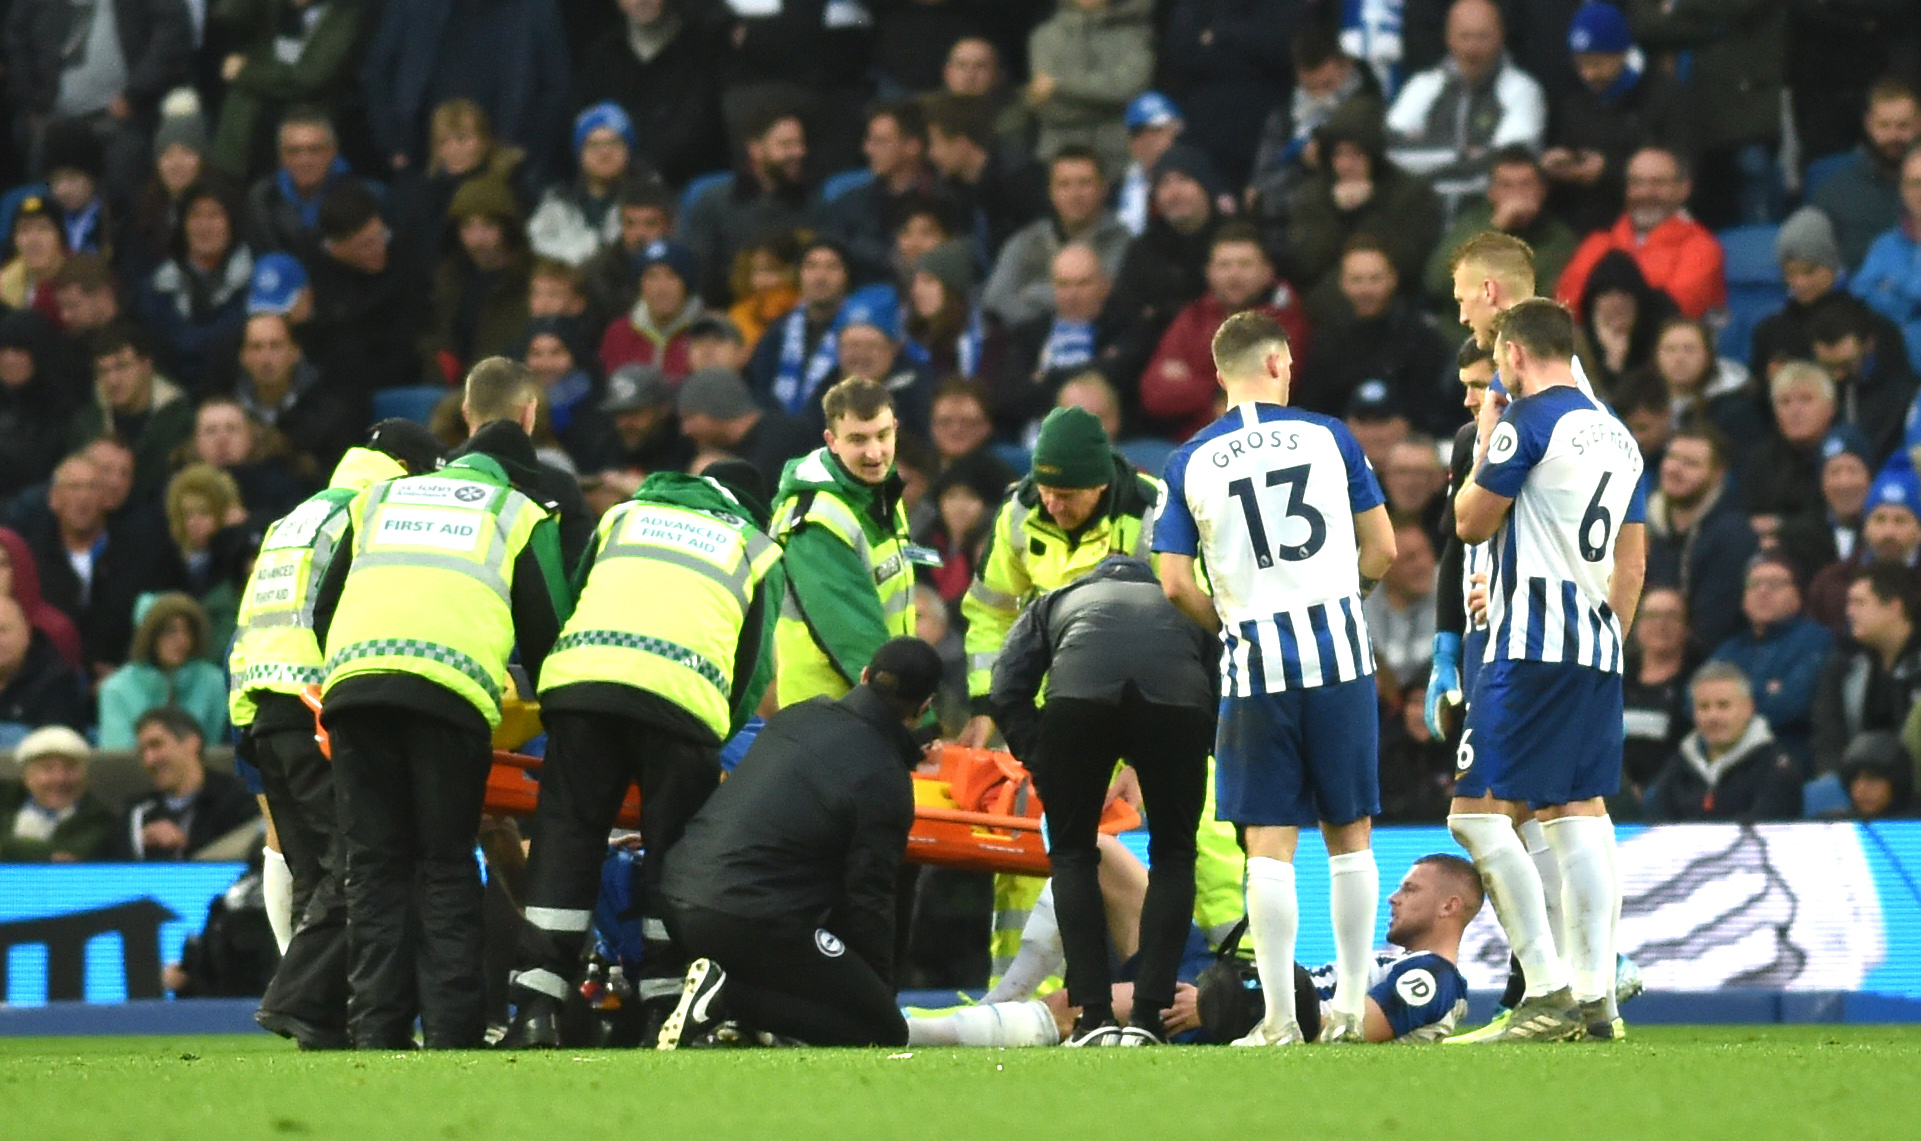 Adam Webster recovering from ankle ligament damage